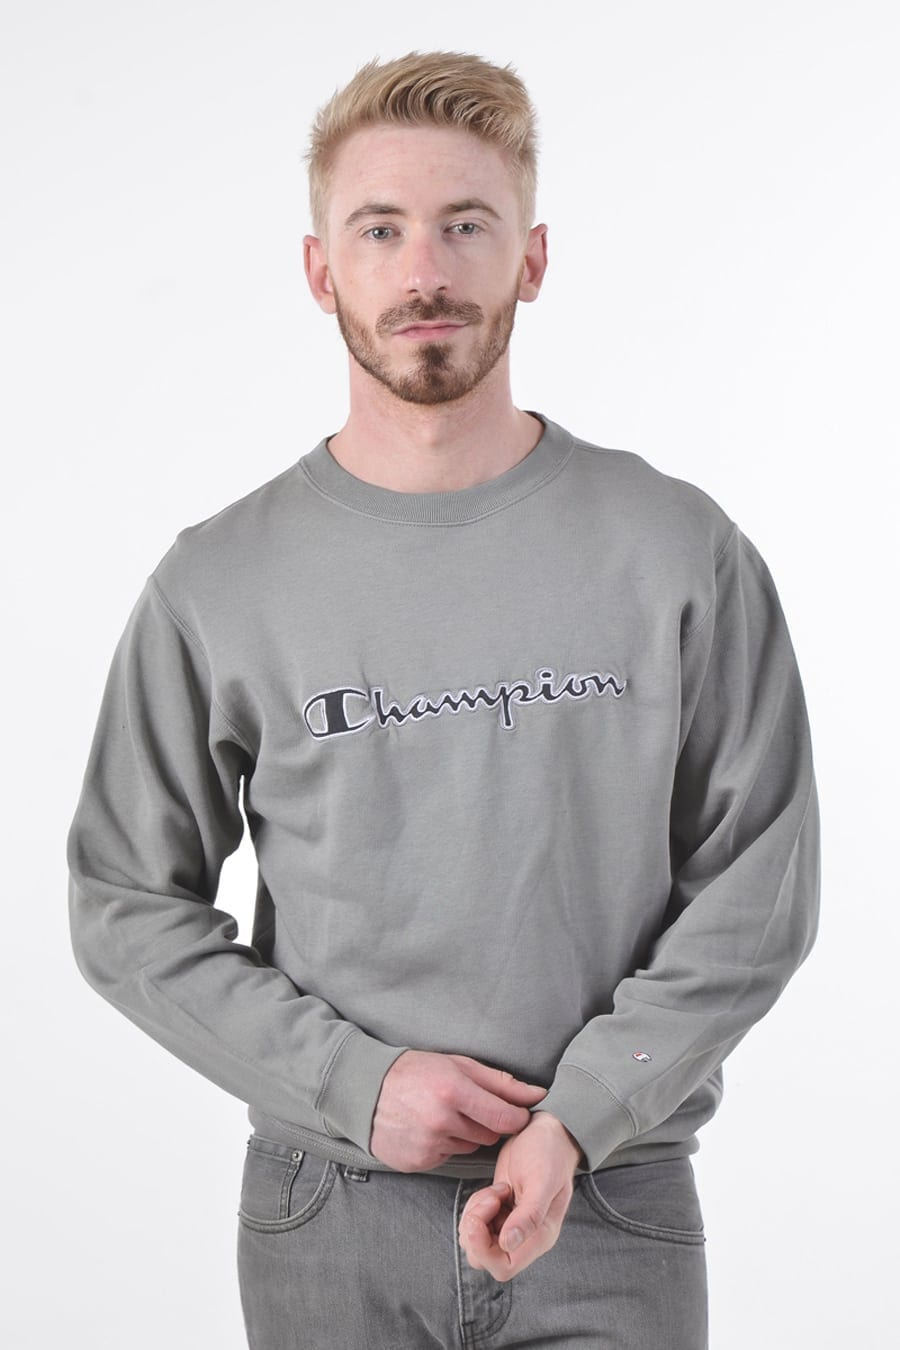 Vintage Men's Champion sweatshirt